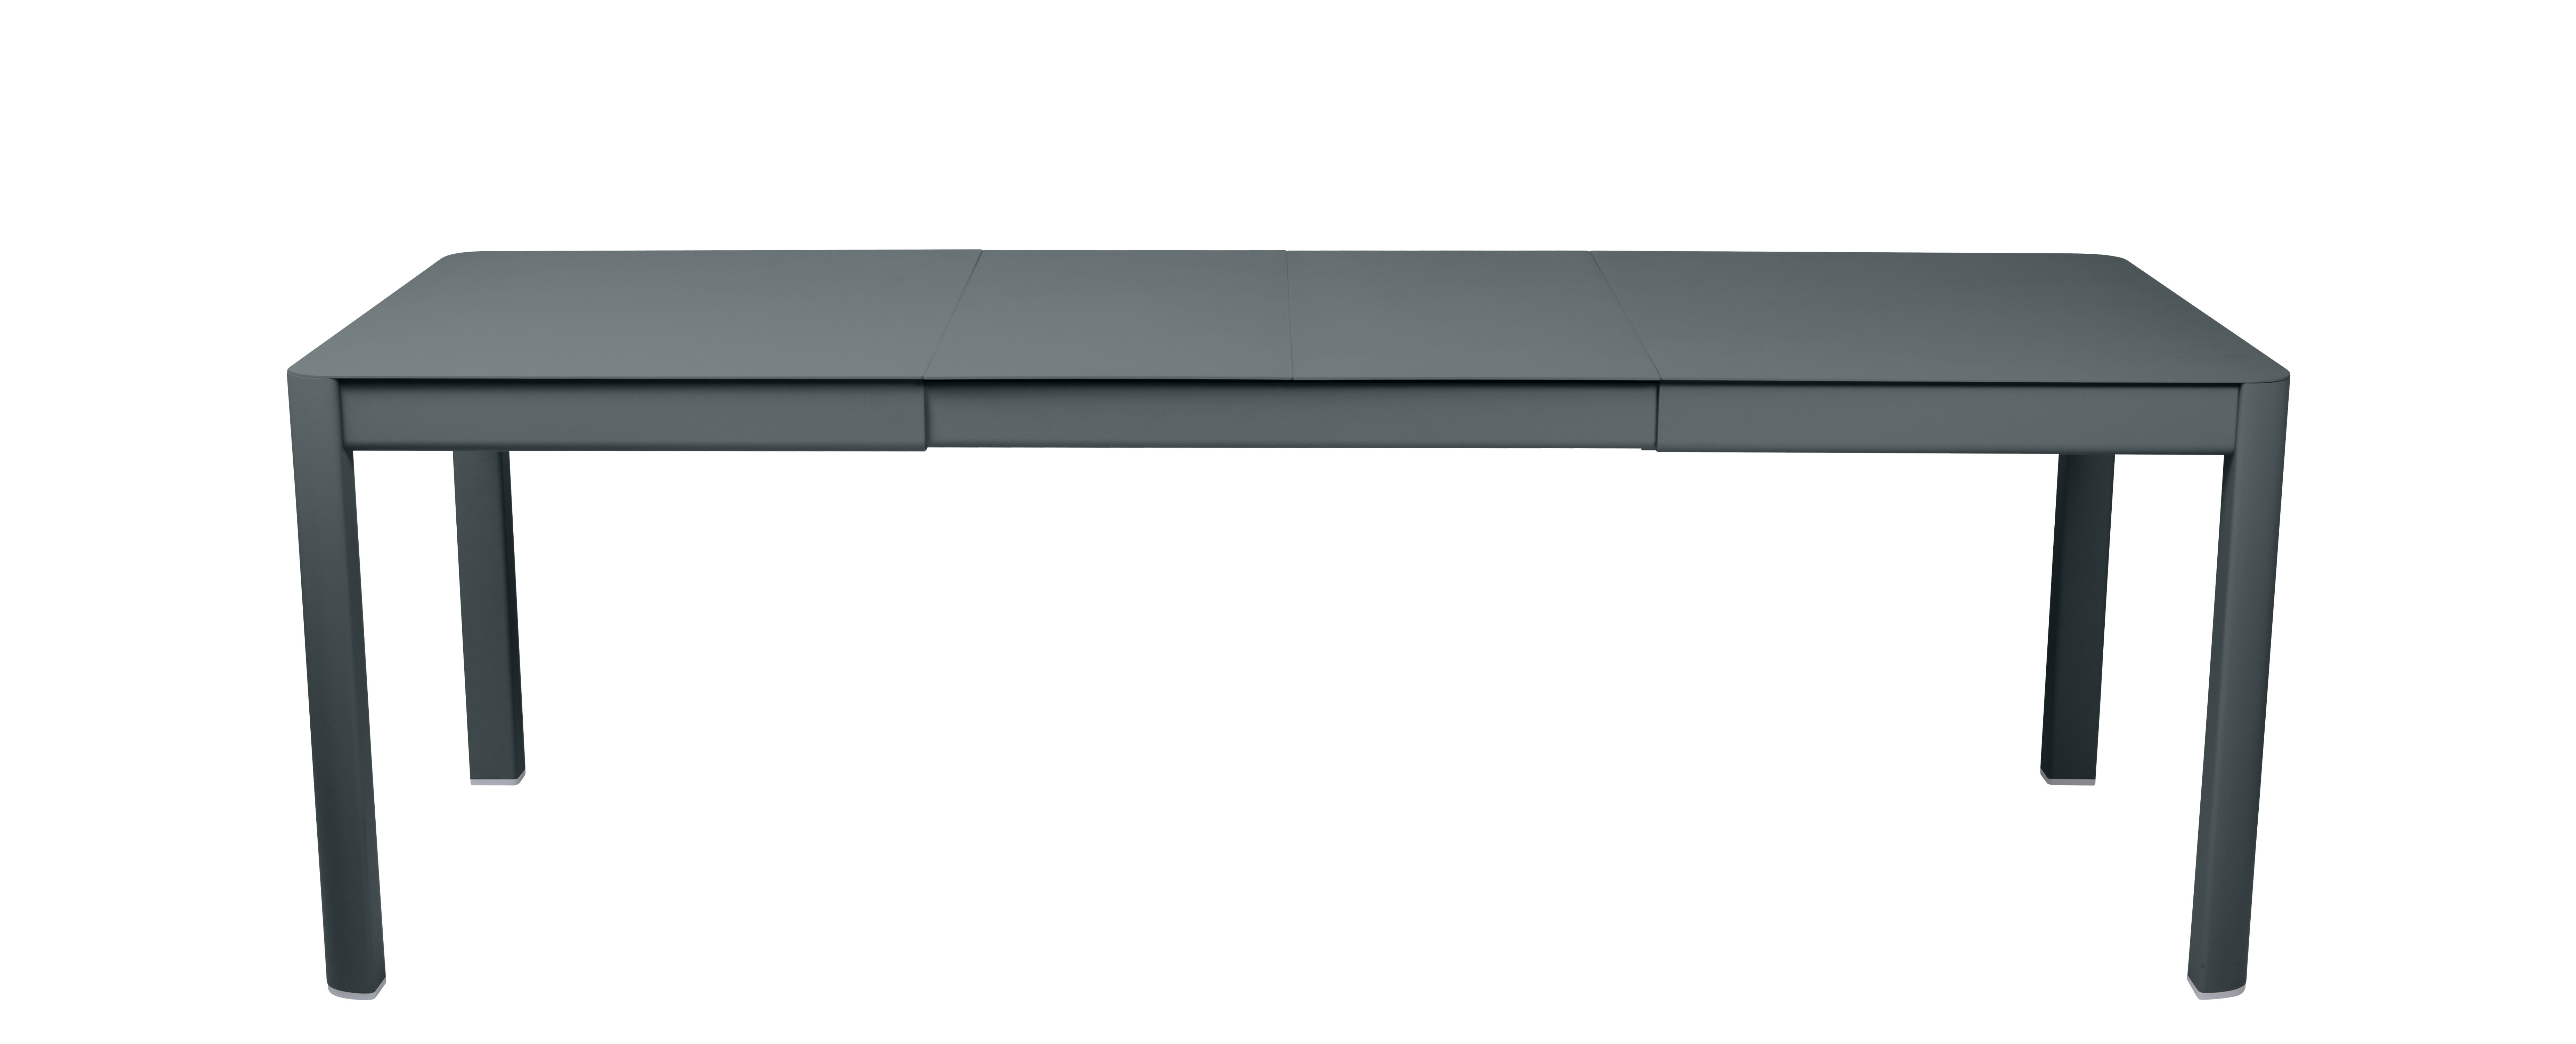 Outdoor - Garden Tables - Ribambelle Medium Extending table - / L 149 to 234 cm - 6 to 10 people by Fermob - Storm grey - Aluminium